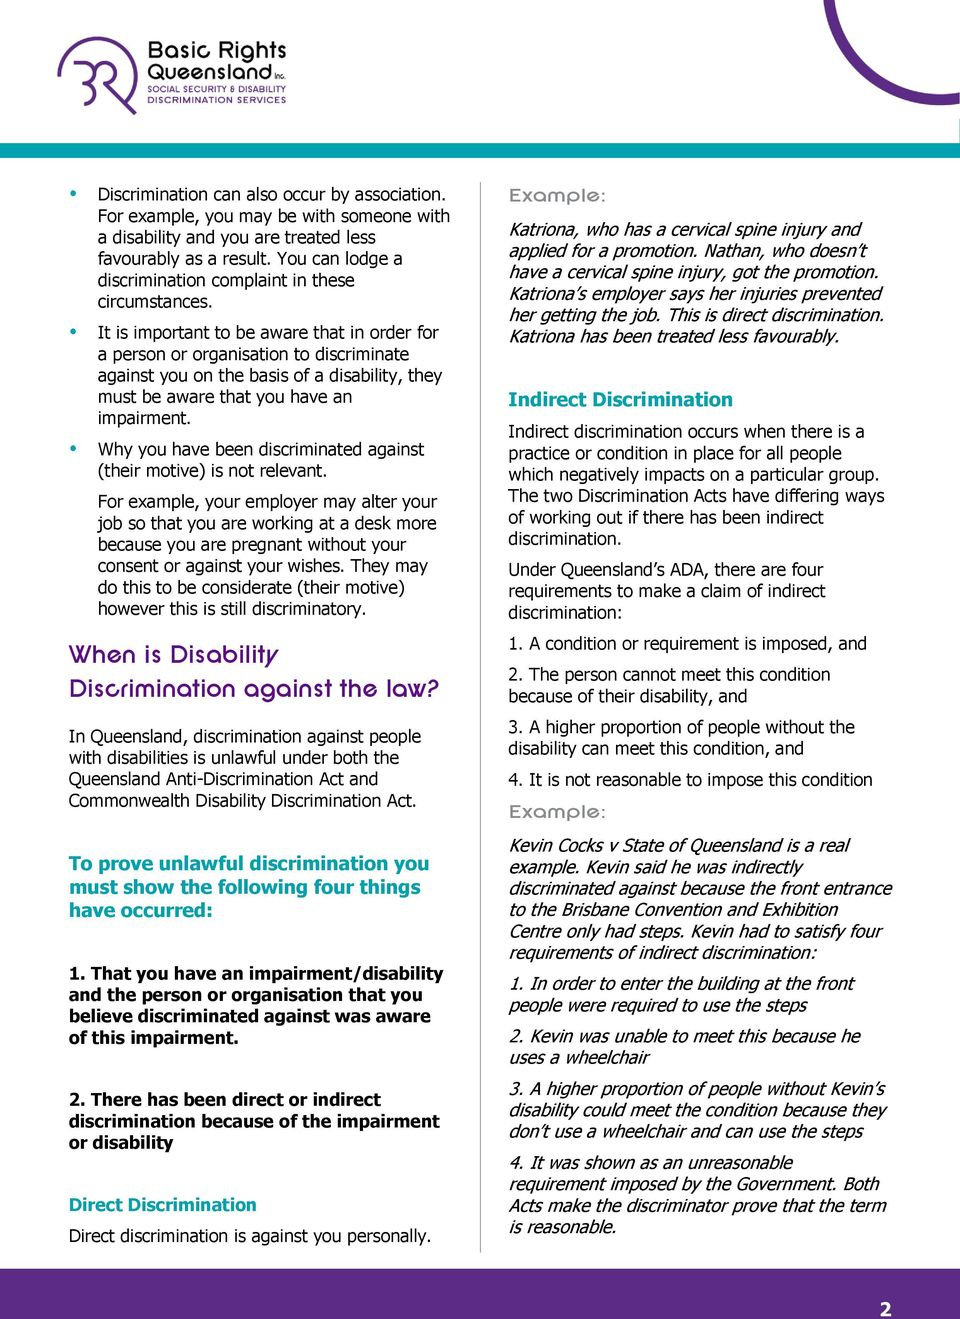 It is important to be aware that in order for a person or organisation to discriminate against you on the basis of a disability, they must be aware that you have an Why you have been discriminated